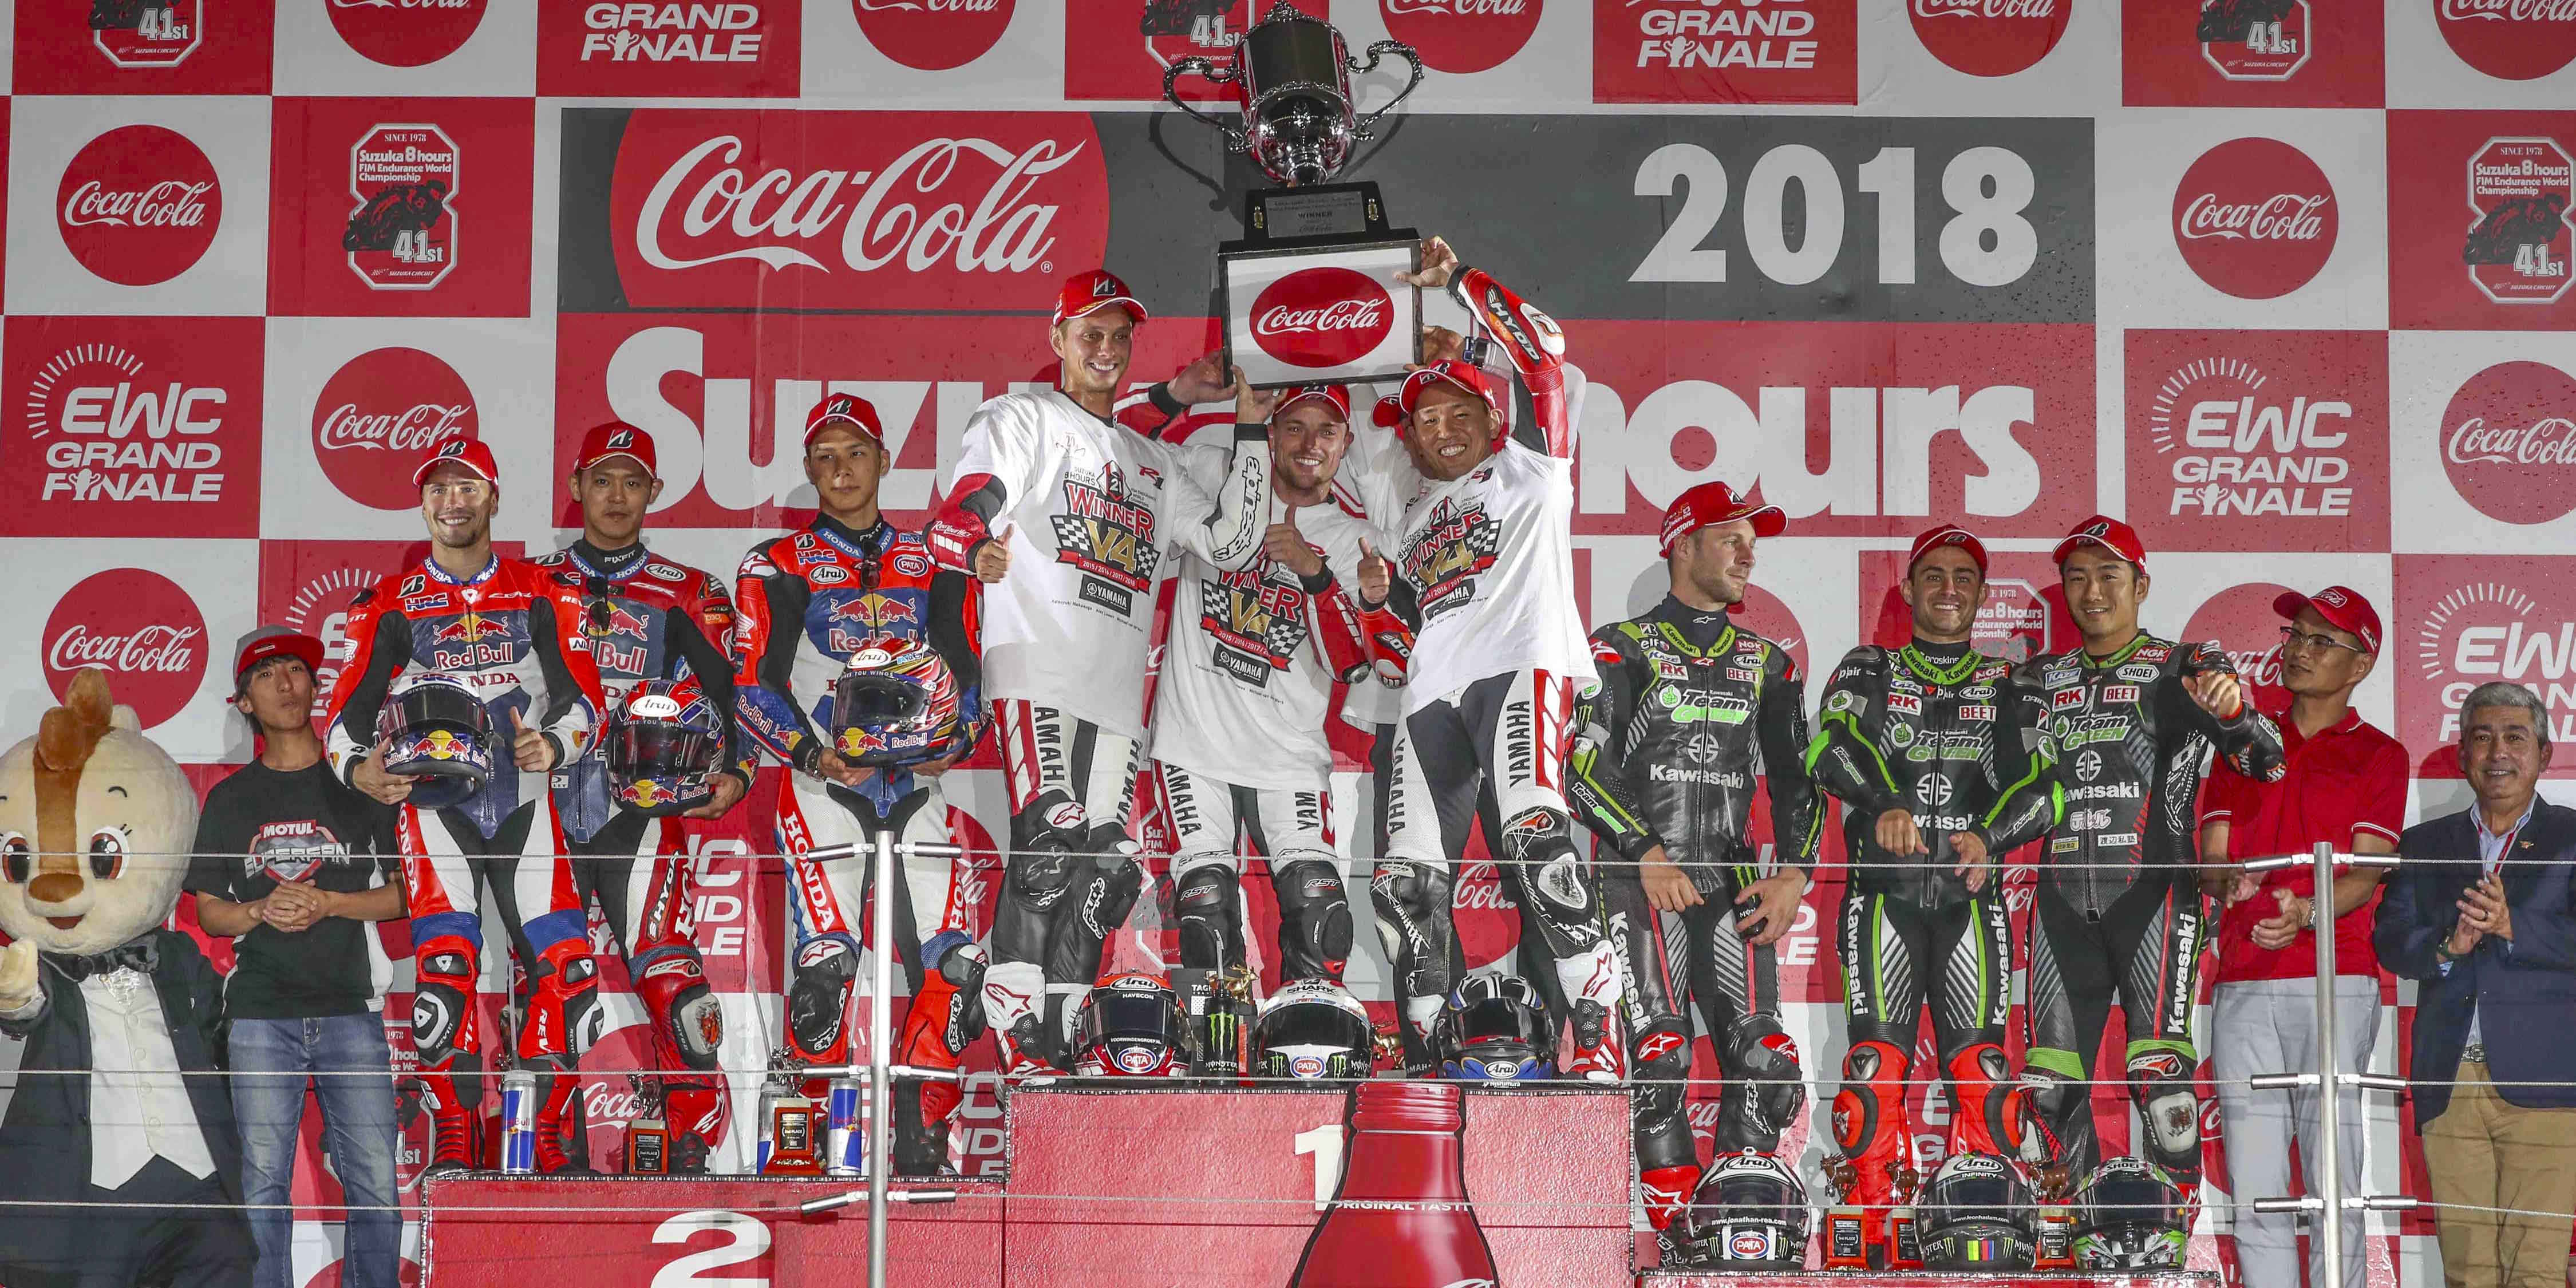 Yamaha Factory Racing Team claims fourth win at Suzuka   –   F.C.C. TSR Honda France, the first Japanese team World champion